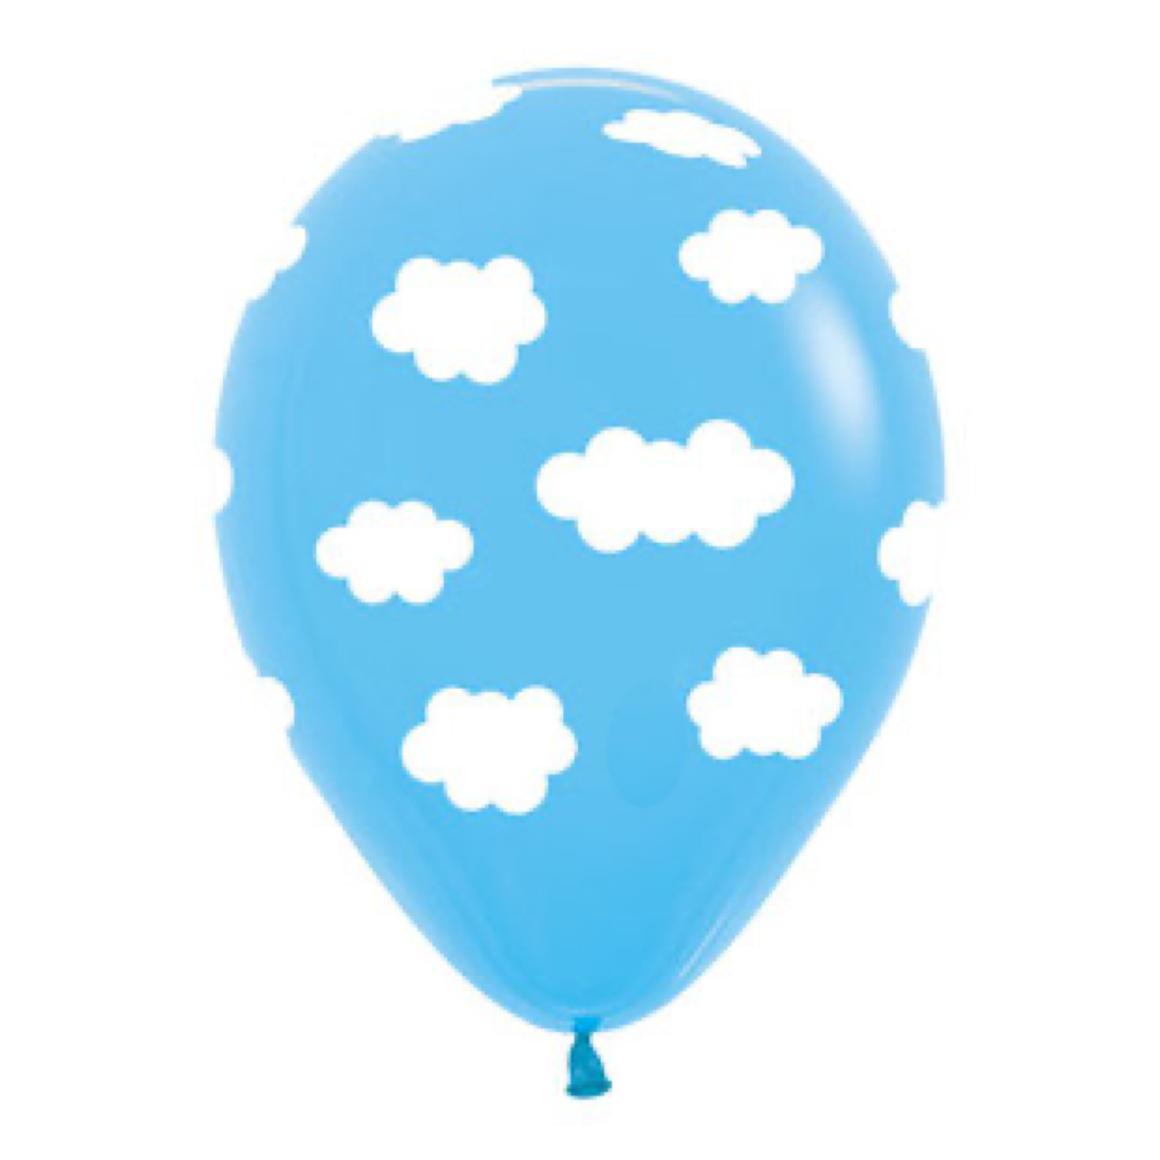 BALLOON BAR - CLOUDS 11""